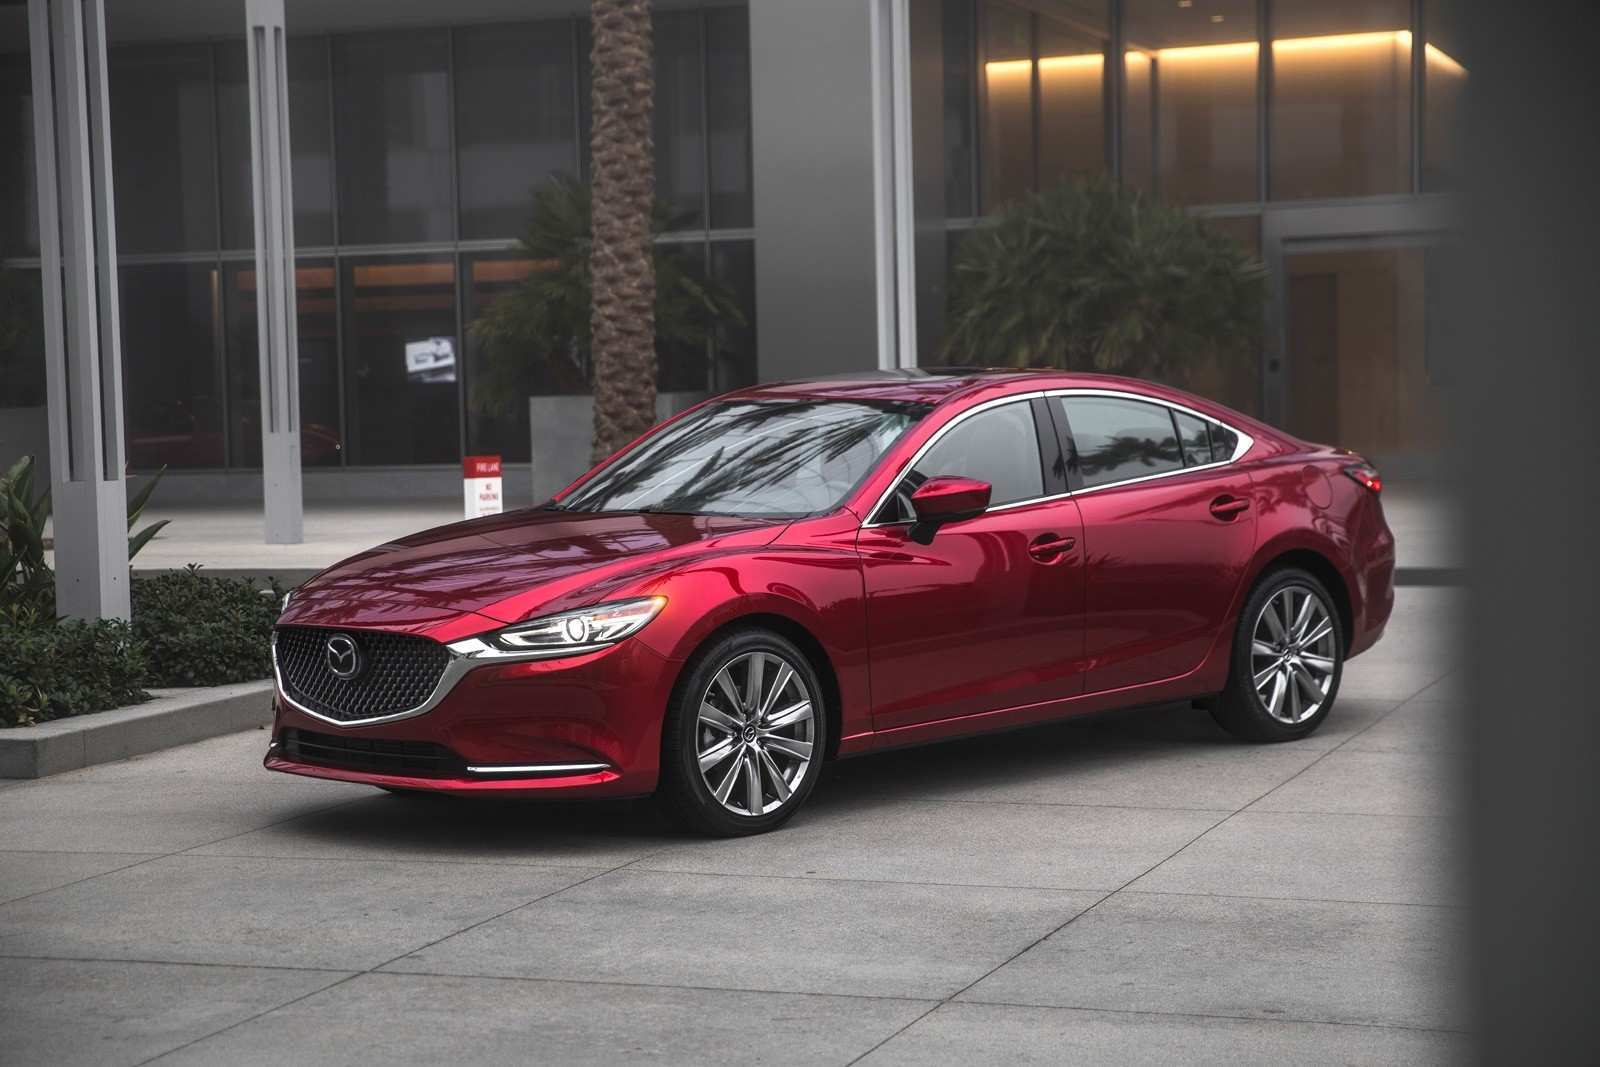 80 Concept of New Mazda Turbo 2019 Release Date And Specs Exterior by New Mazda Turbo 2019 Release Date And Specs